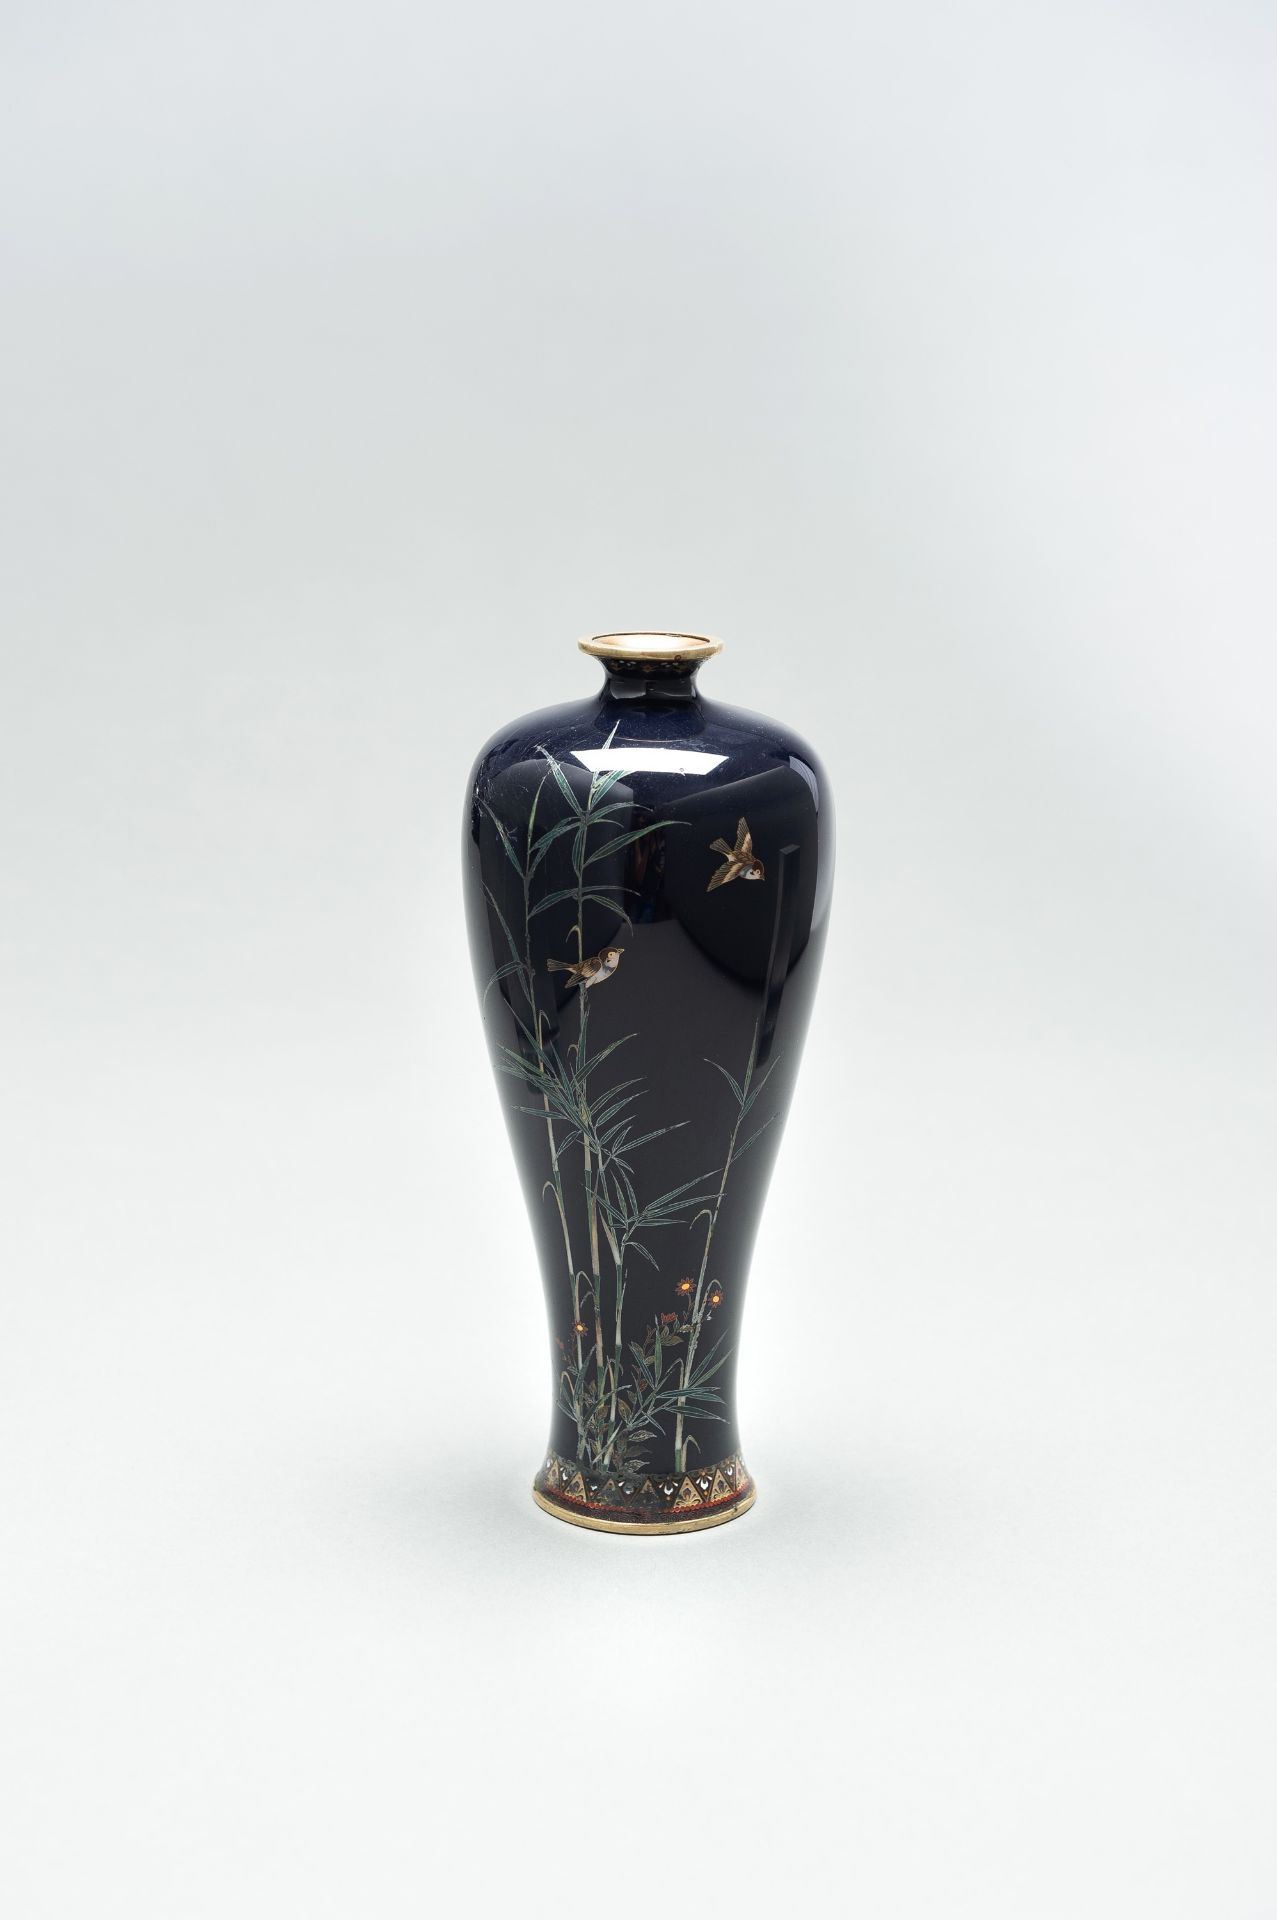 A CLOISONNE ENAMEL VASE WITH BAMBOO AND BIRDS